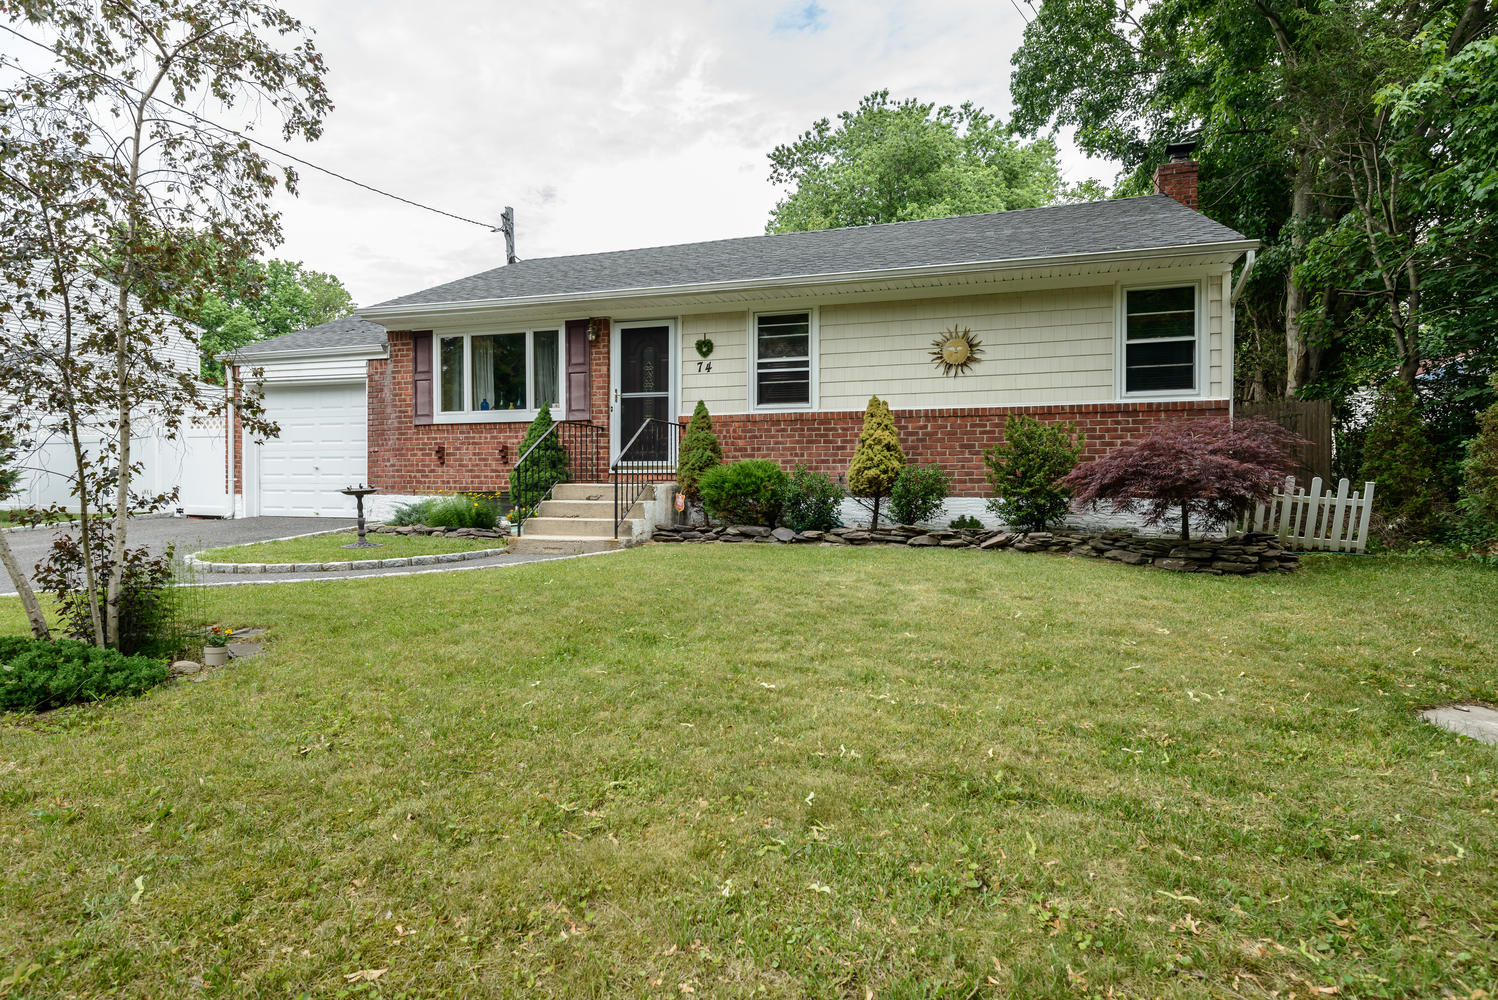 Single Family Home for Sale at Ranch 74 Dix Hills Rd Huntington, New York, 11743 United States